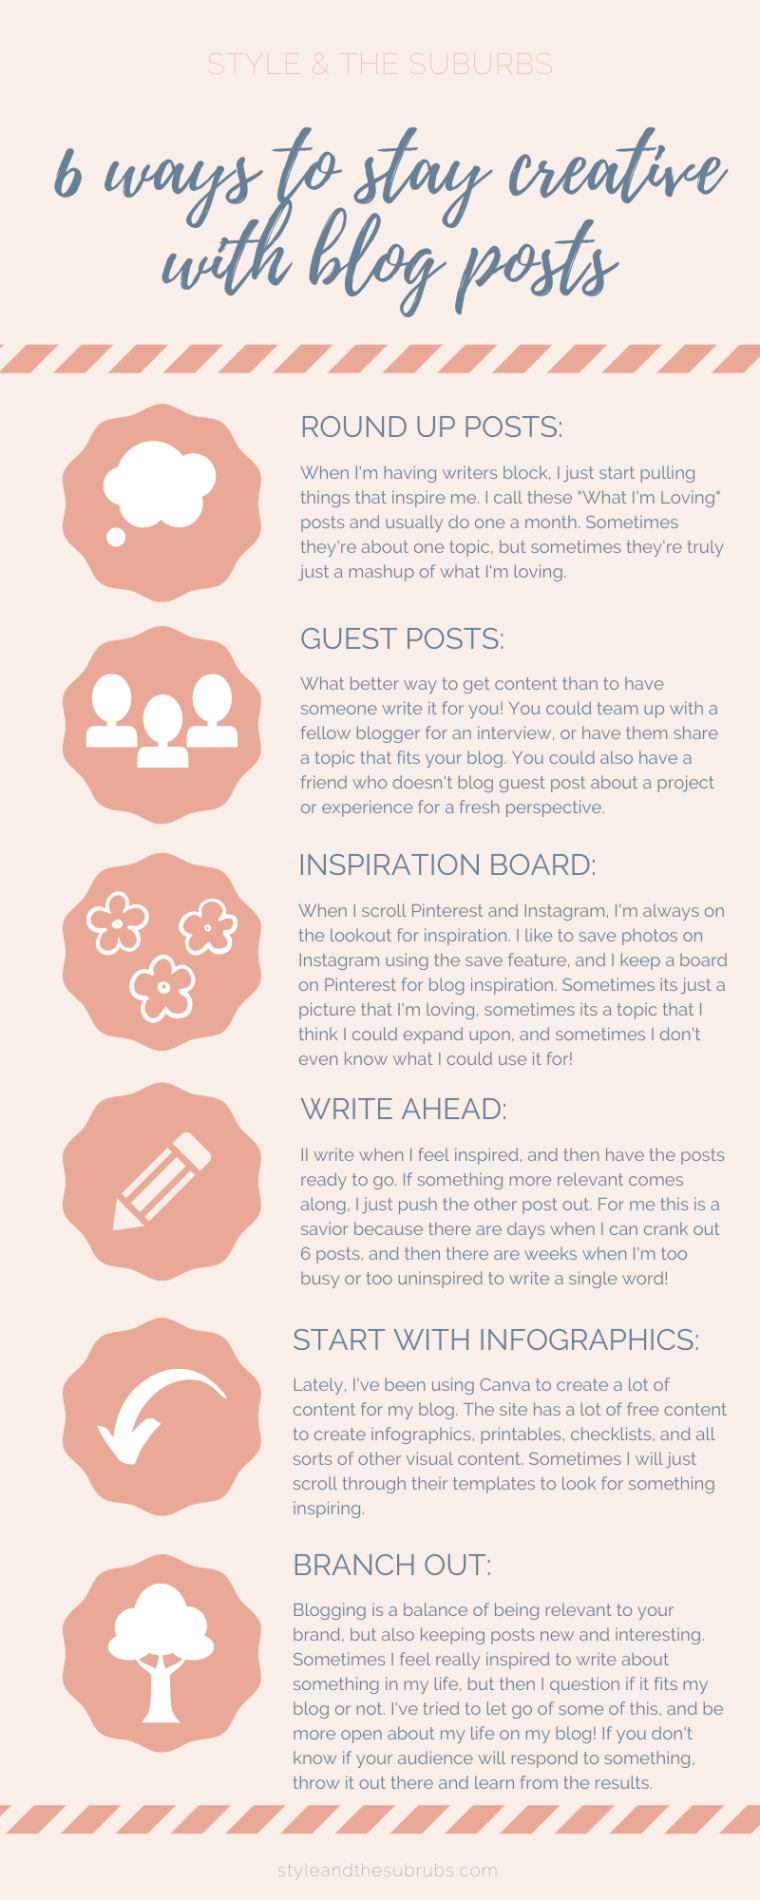 6 Ways to Stay Creative with Blog Posts | Style & the Suburbs